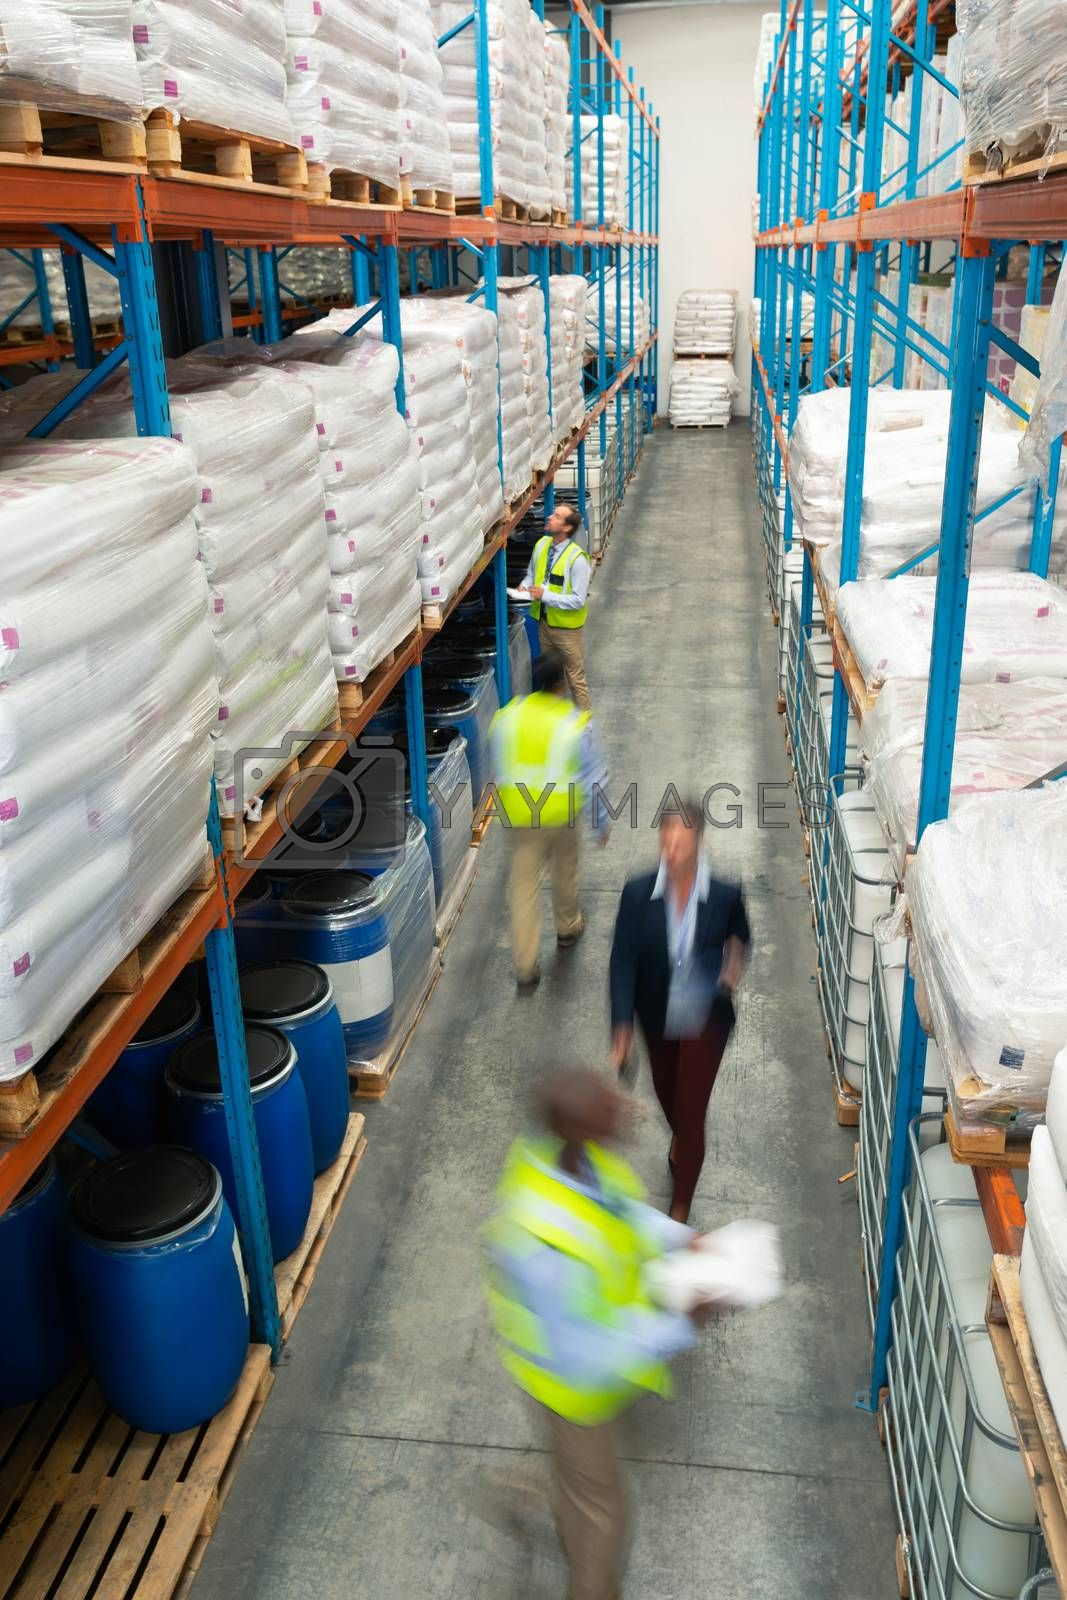 High angle view of diverse warehouse staff checking stocks in aisle in warehouse. They are holding clipboards and walking in aisle. This is a freight transportation and distribution warehouse. Industrial and industrial workers concept